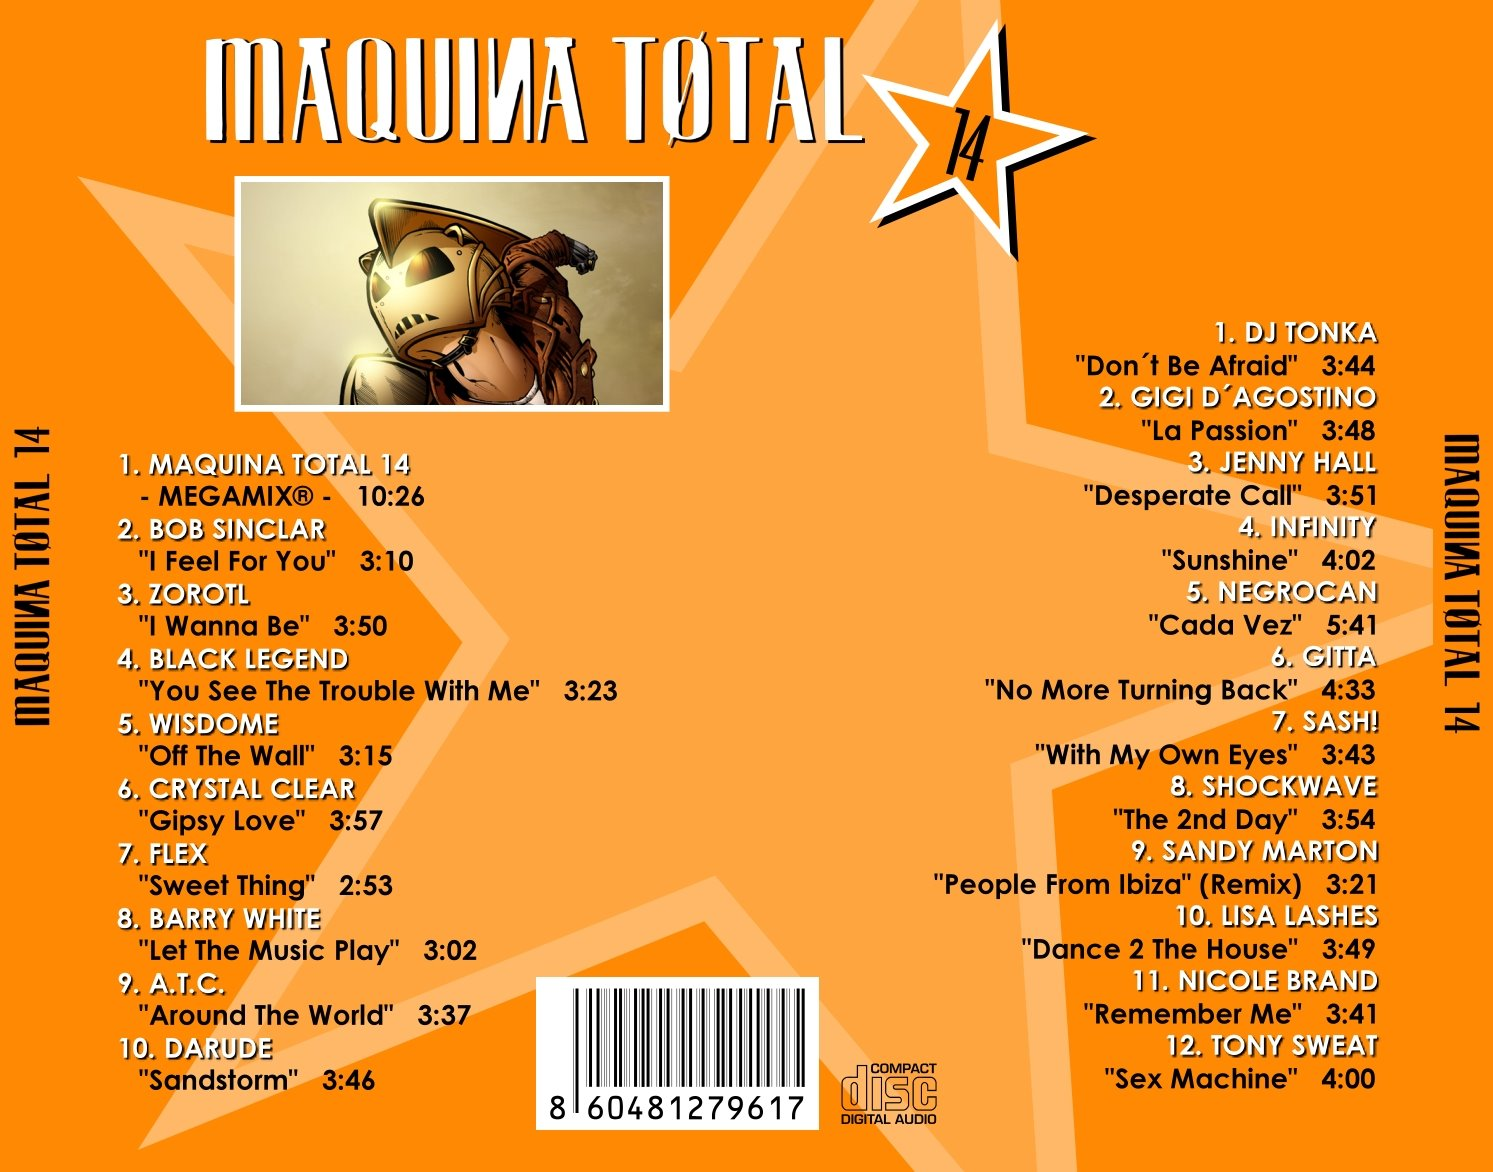 01 Maquina Total 9 Megamix Mp3 MP3 Download